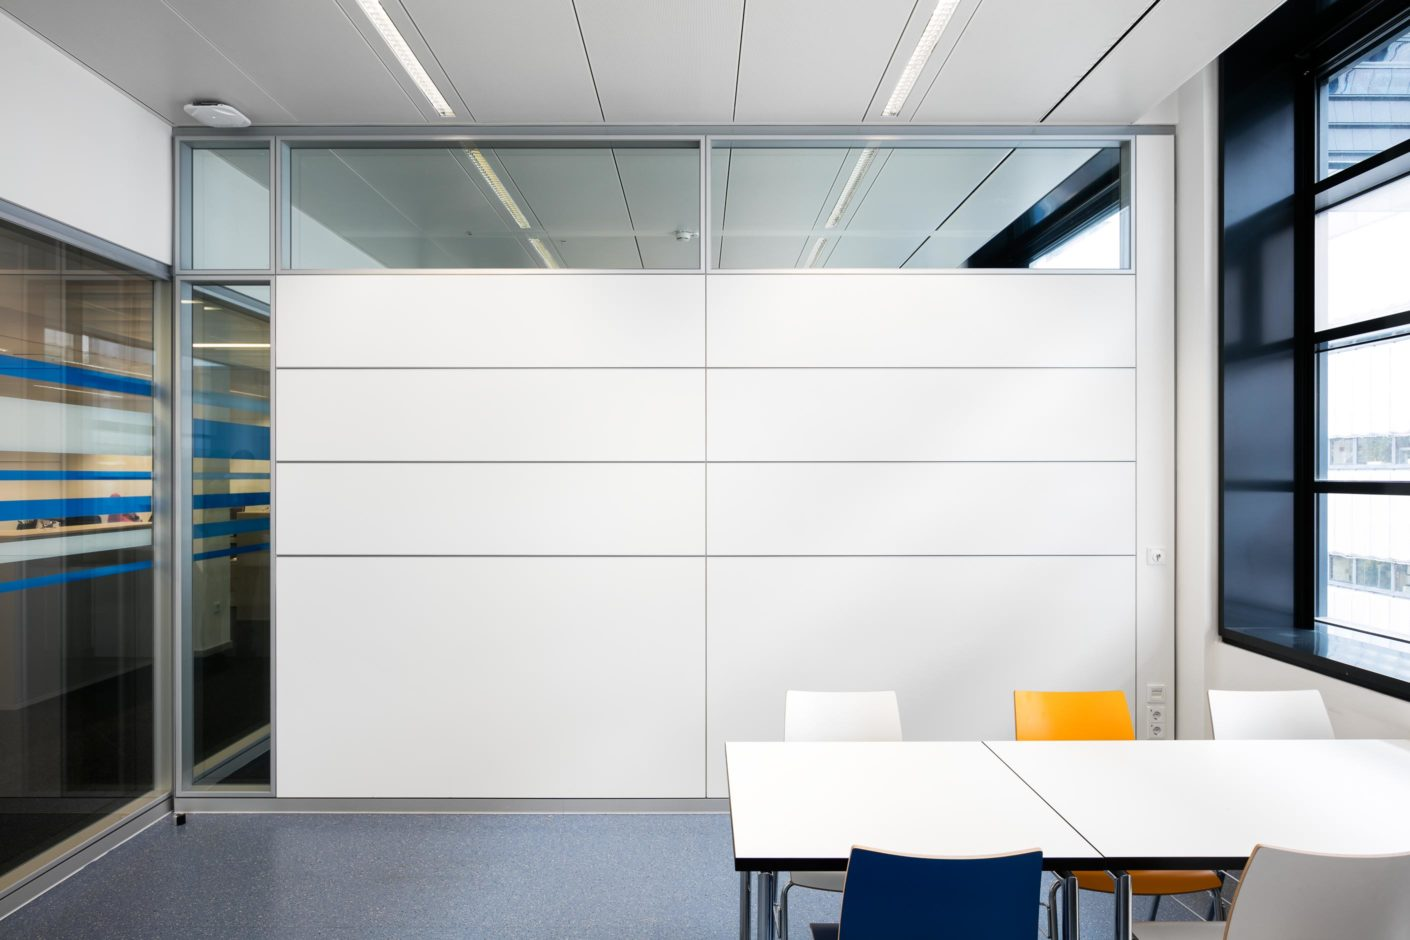 Sustainable laboratory with feco wall systems | BASF, Ludwigshafen